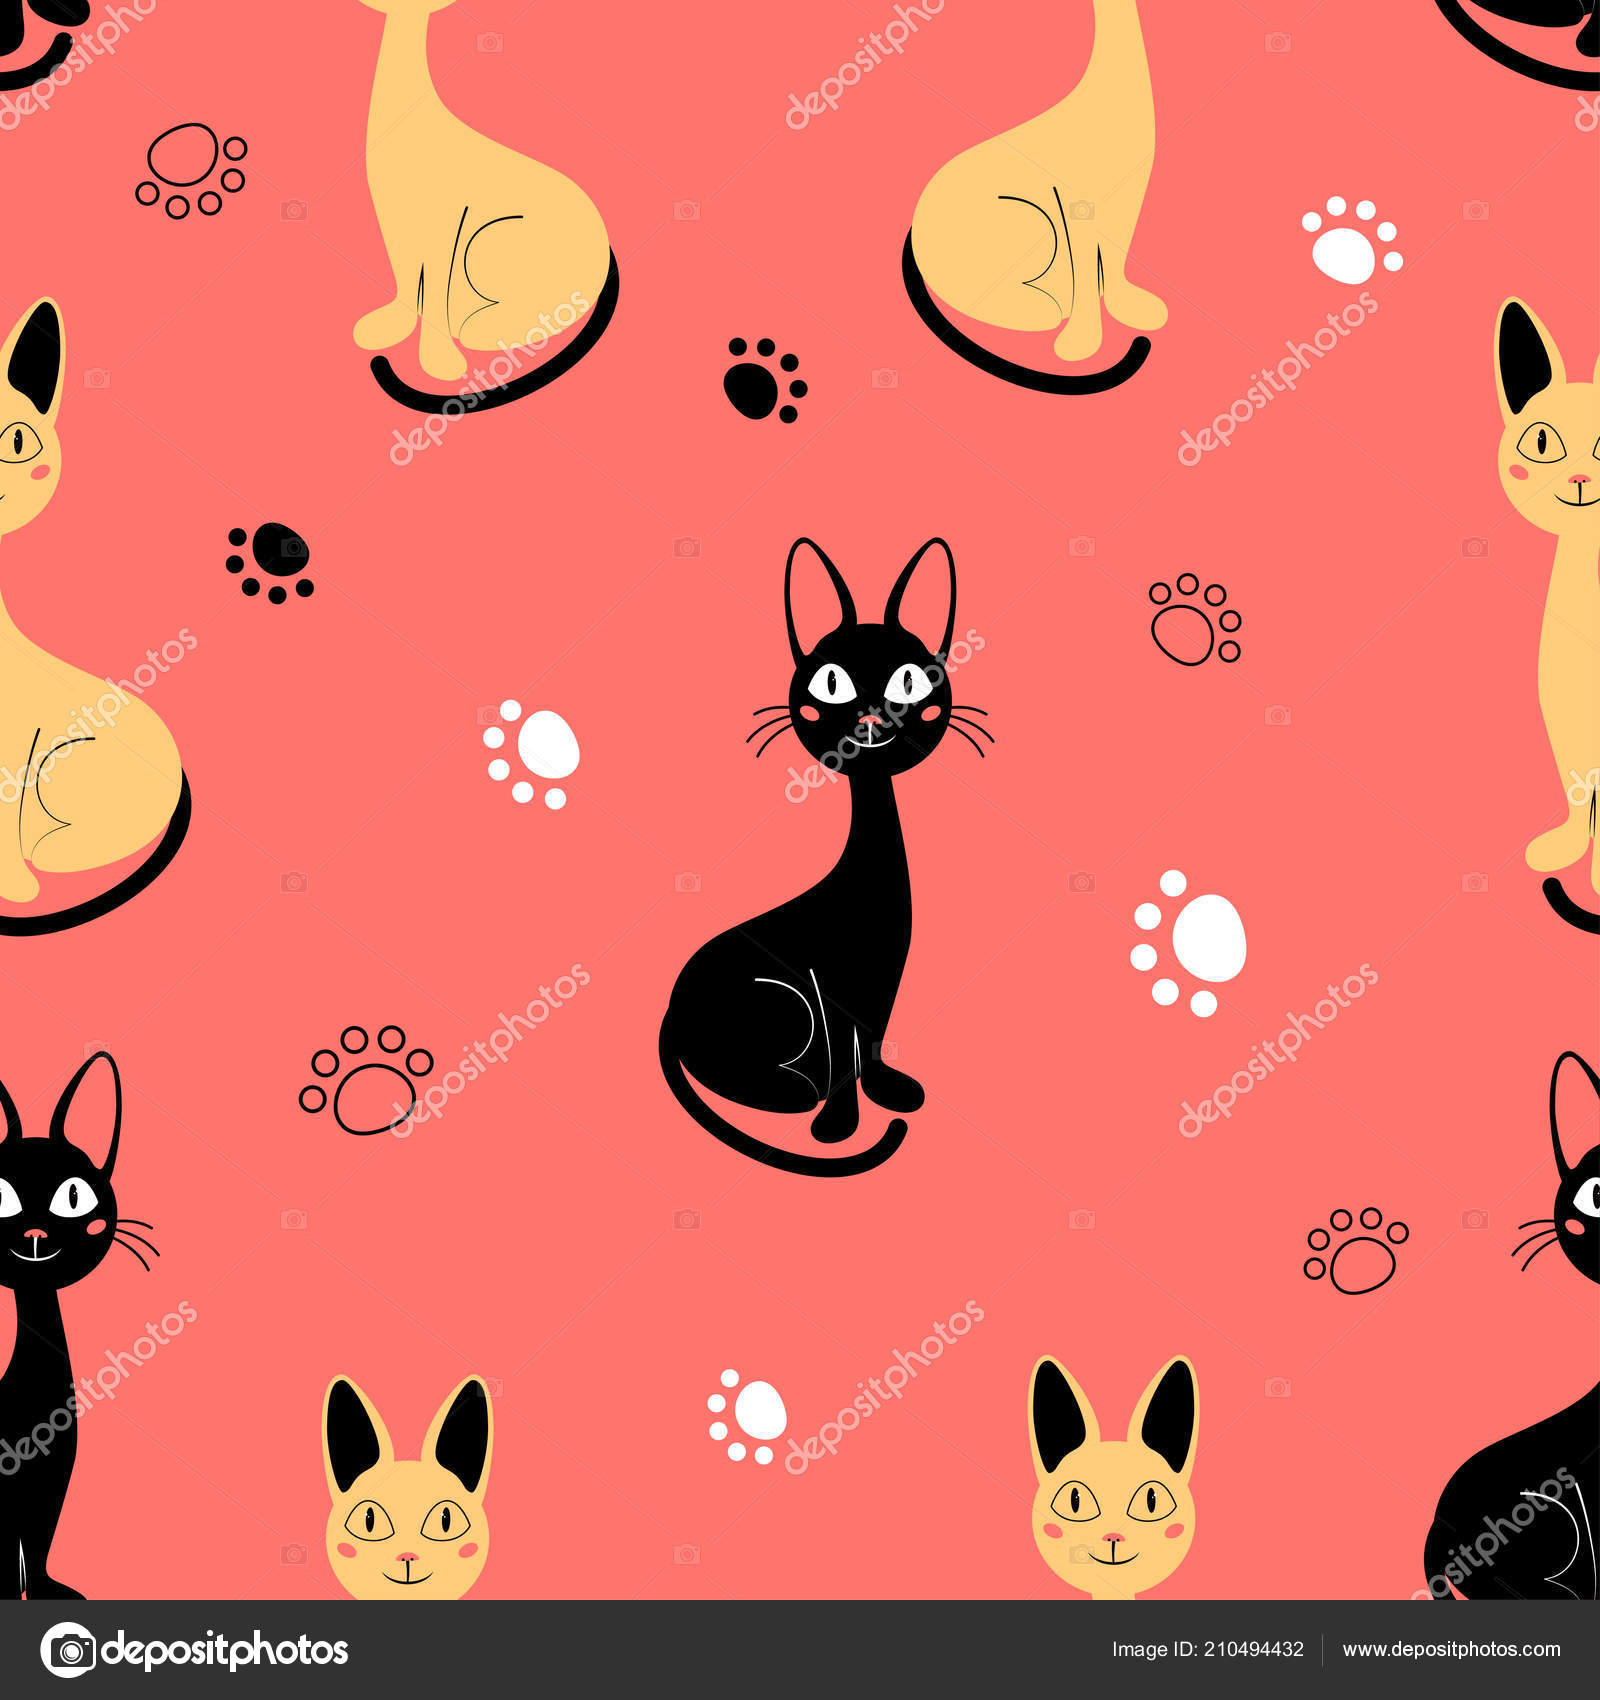 7x10 FT Kitty Vinyl Photography Background Backdrops,Cartoon Cats Illustration Kitten in Love Painting a Heart Carrying Romantic Balloons Background for Photo Backdrop Studio Props Photo Backdrop Wall